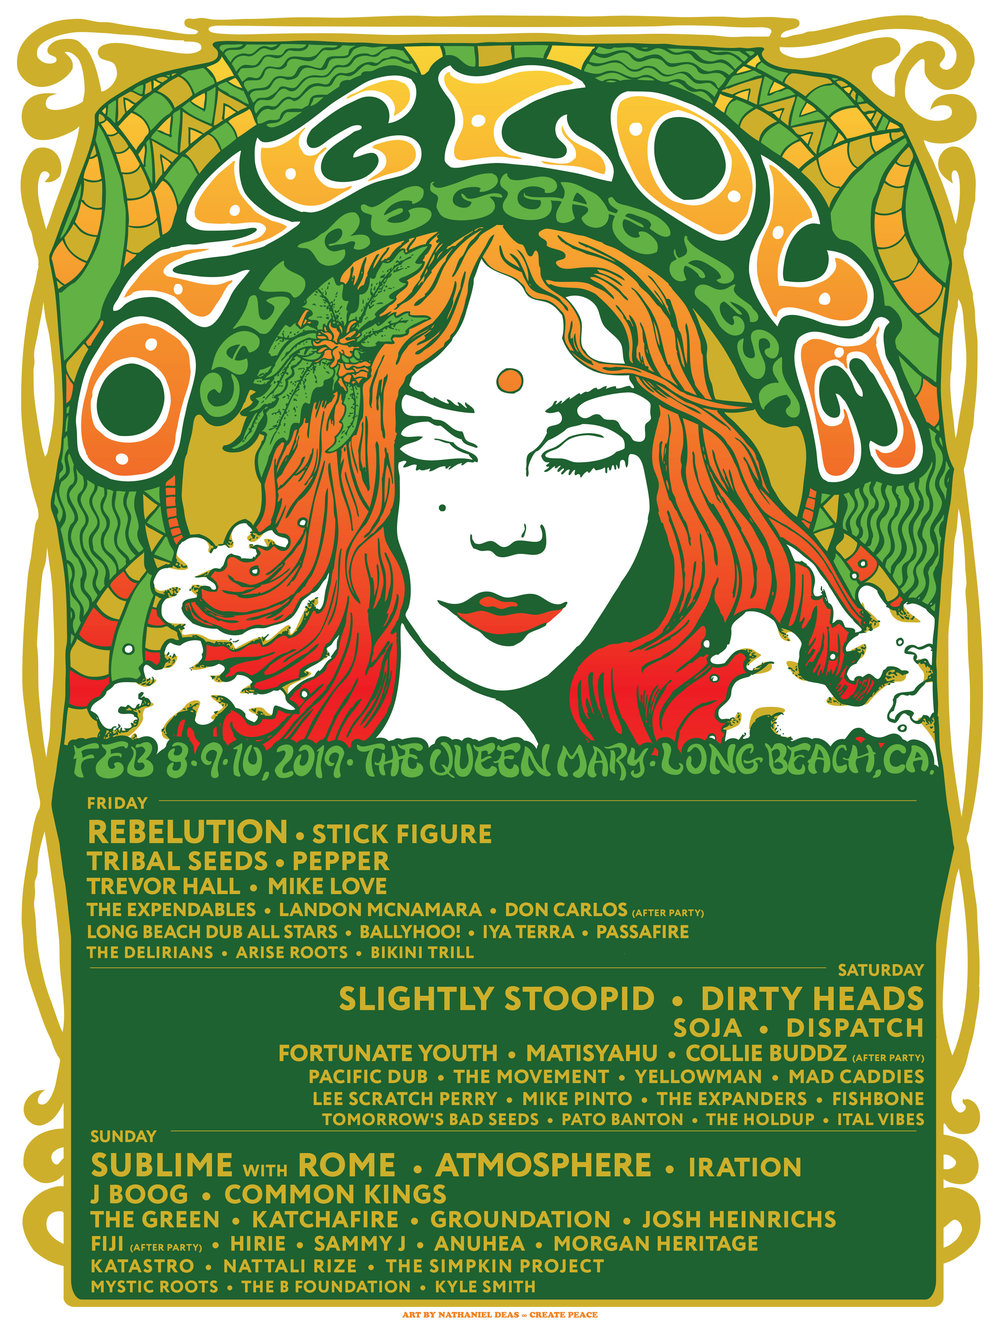 Catch Us At… - One Love, in Long Beach California!